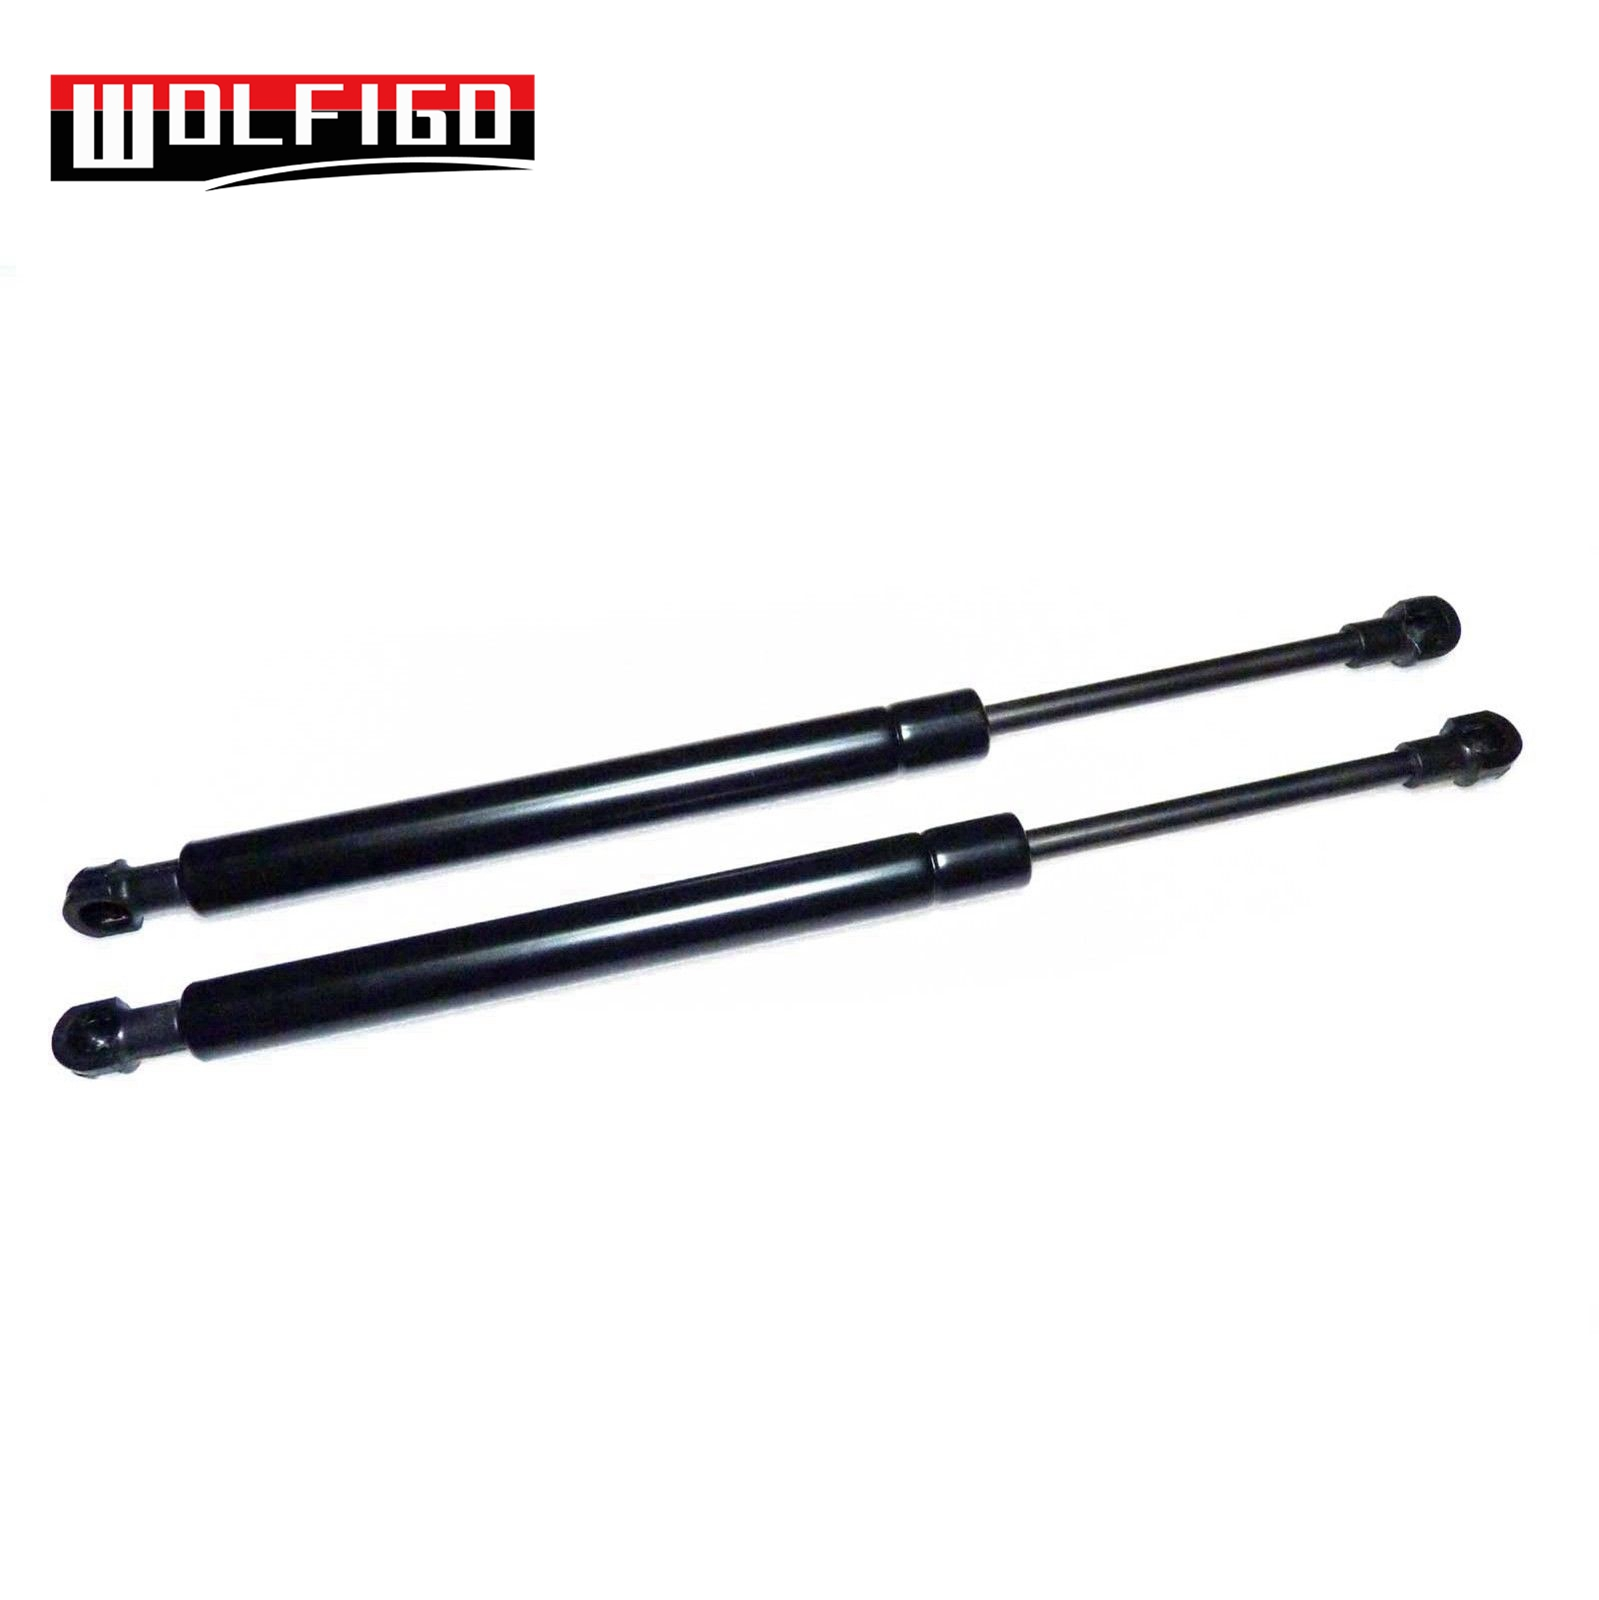 WOLFIGO For Volkswagen Touareg 2004 2005 2006 2007 2008 2009 2010 6617 Rear Window Lift Supports Shock Gas Struts 7L6845587A NEW